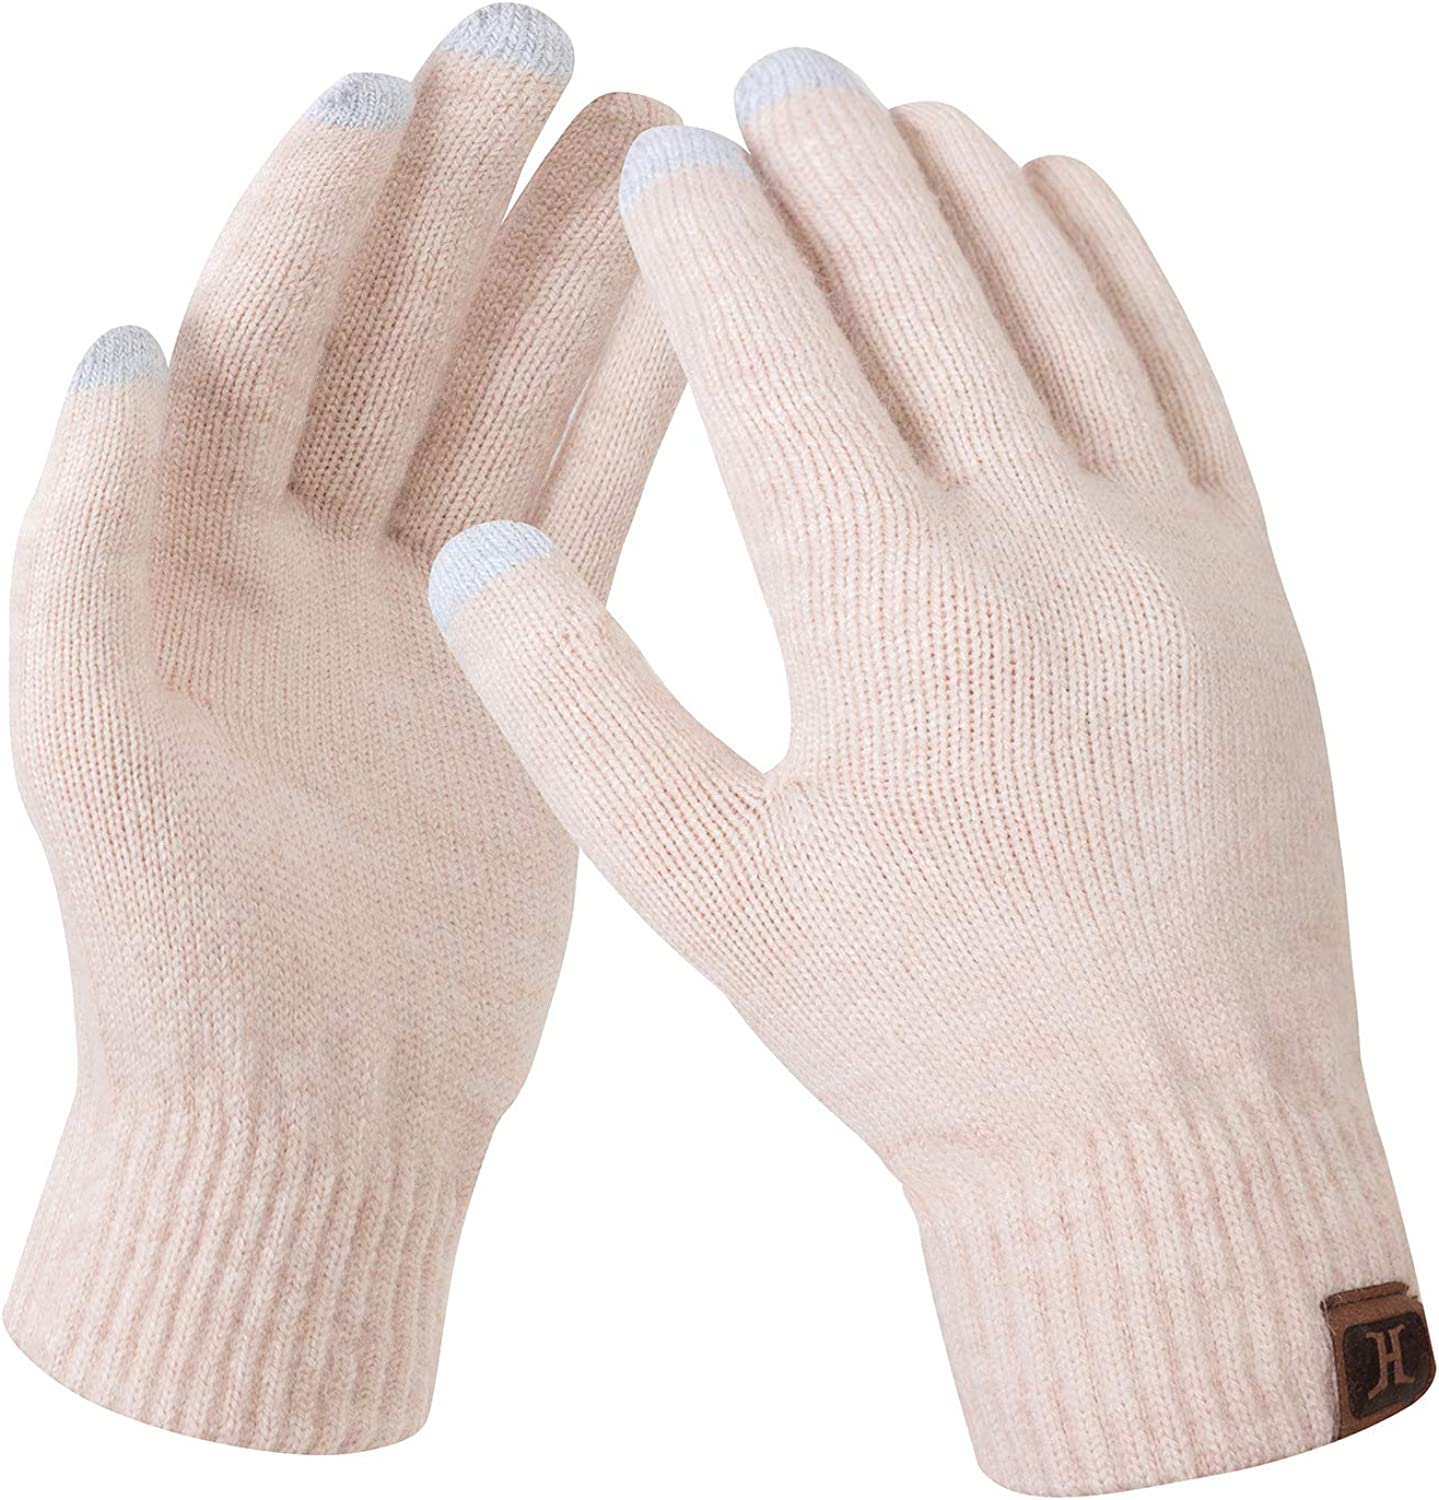 Women Touch Screen Winter Gloves Fleece Thick Warm Comfy Soft Fur Lined Thermal